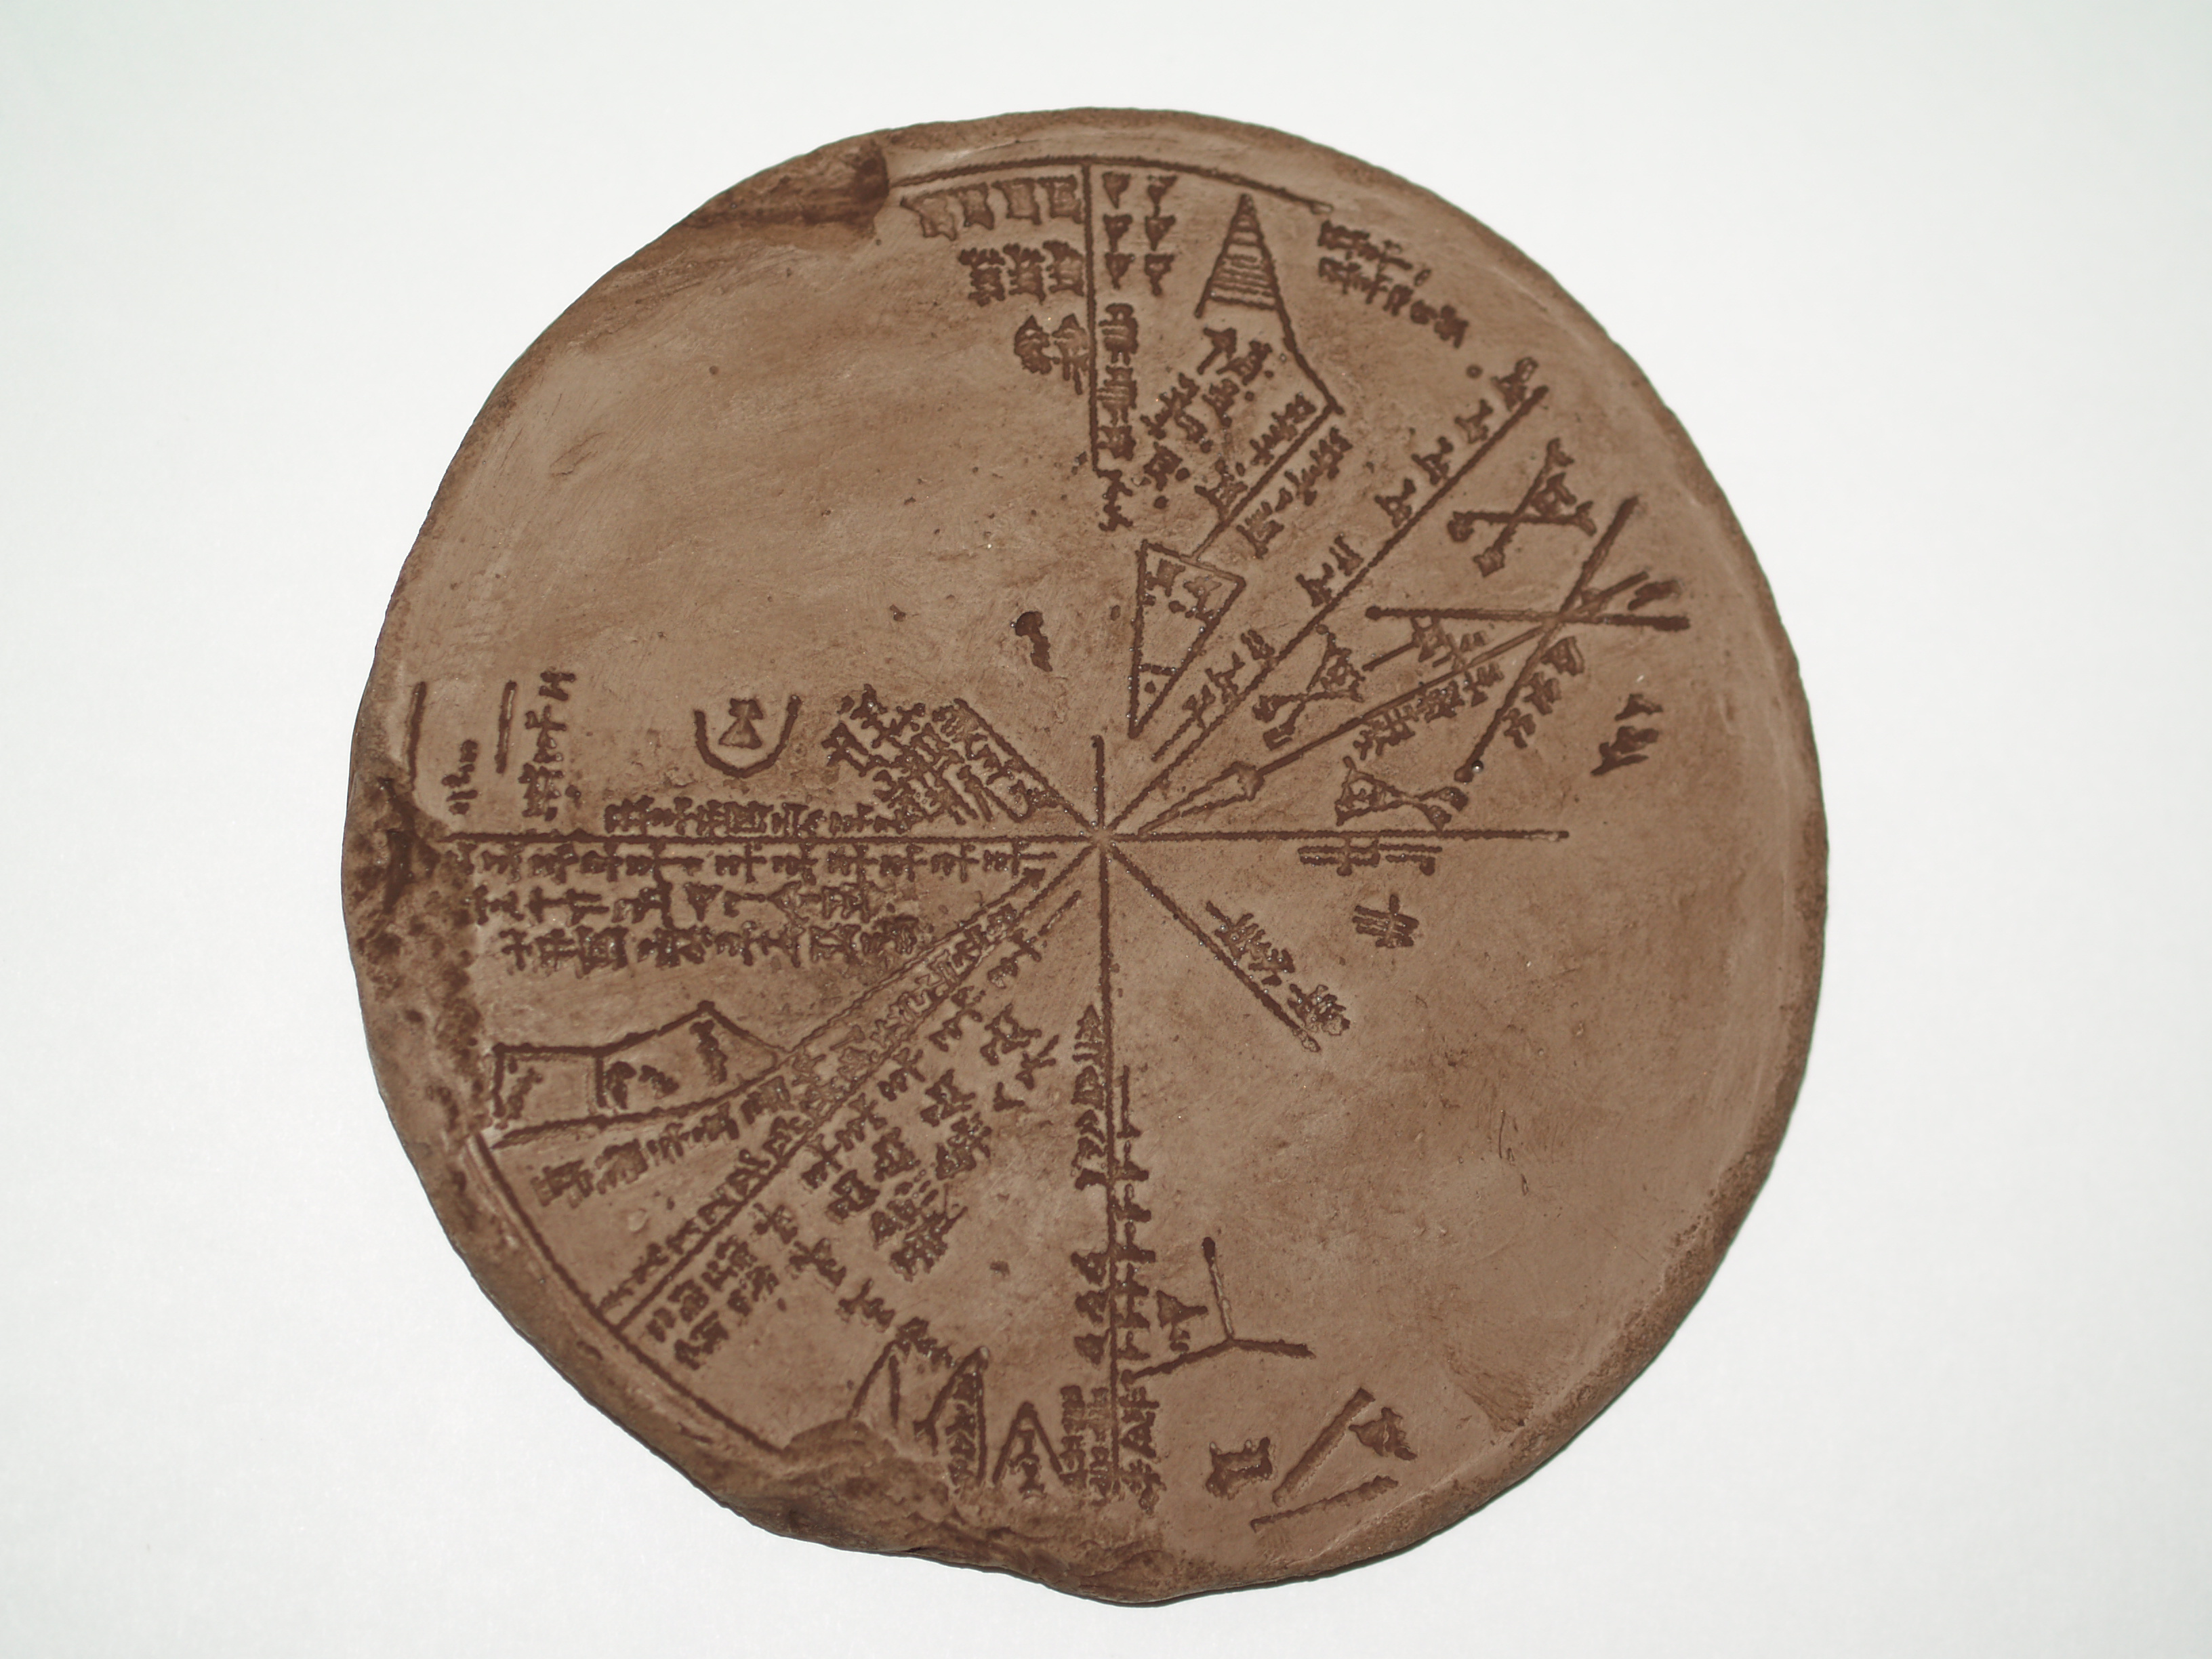 ancient egyptian map with Product Info on Product info in addition The Mysterious Underground City Of Derinkuyu moreover New Virtual Reality Tour With Oculus as well C AIGN of FRANCE 1814 besides Corfu.